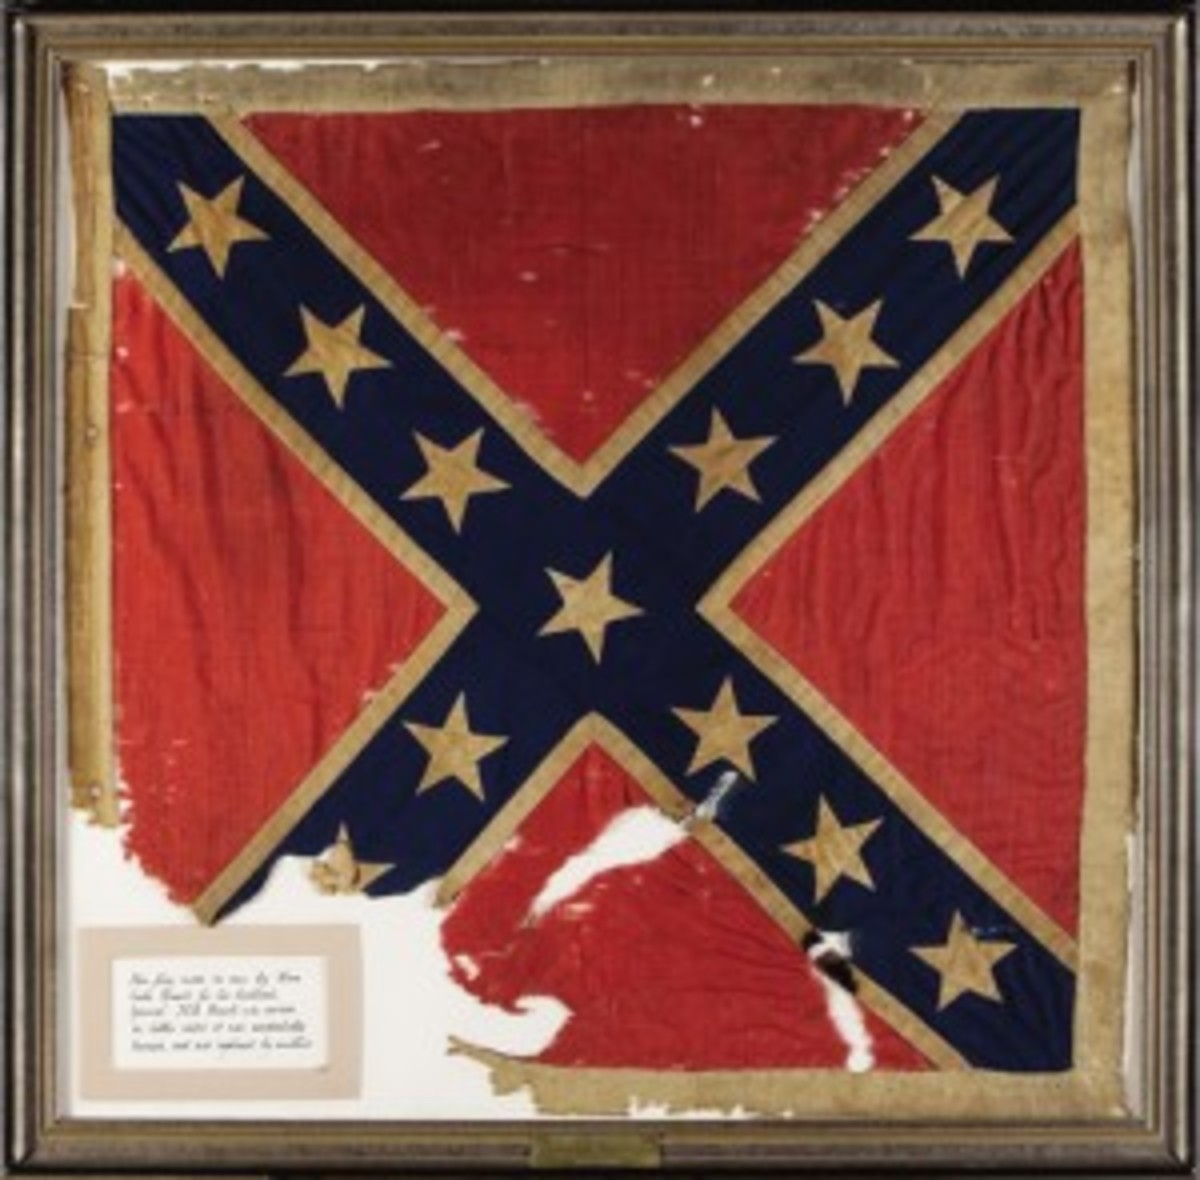 The personal battle flag of Confederate General James Ewell Brown (JEB) Stuart, perhaps the most famous, daring and flamboyant cavalry commander in the Civil War, who fell in battle on May 11, 1864. Sold through Heritage Auctions December 2006, $956,000. Courtesy of Heritage Auctions, www.ha.com